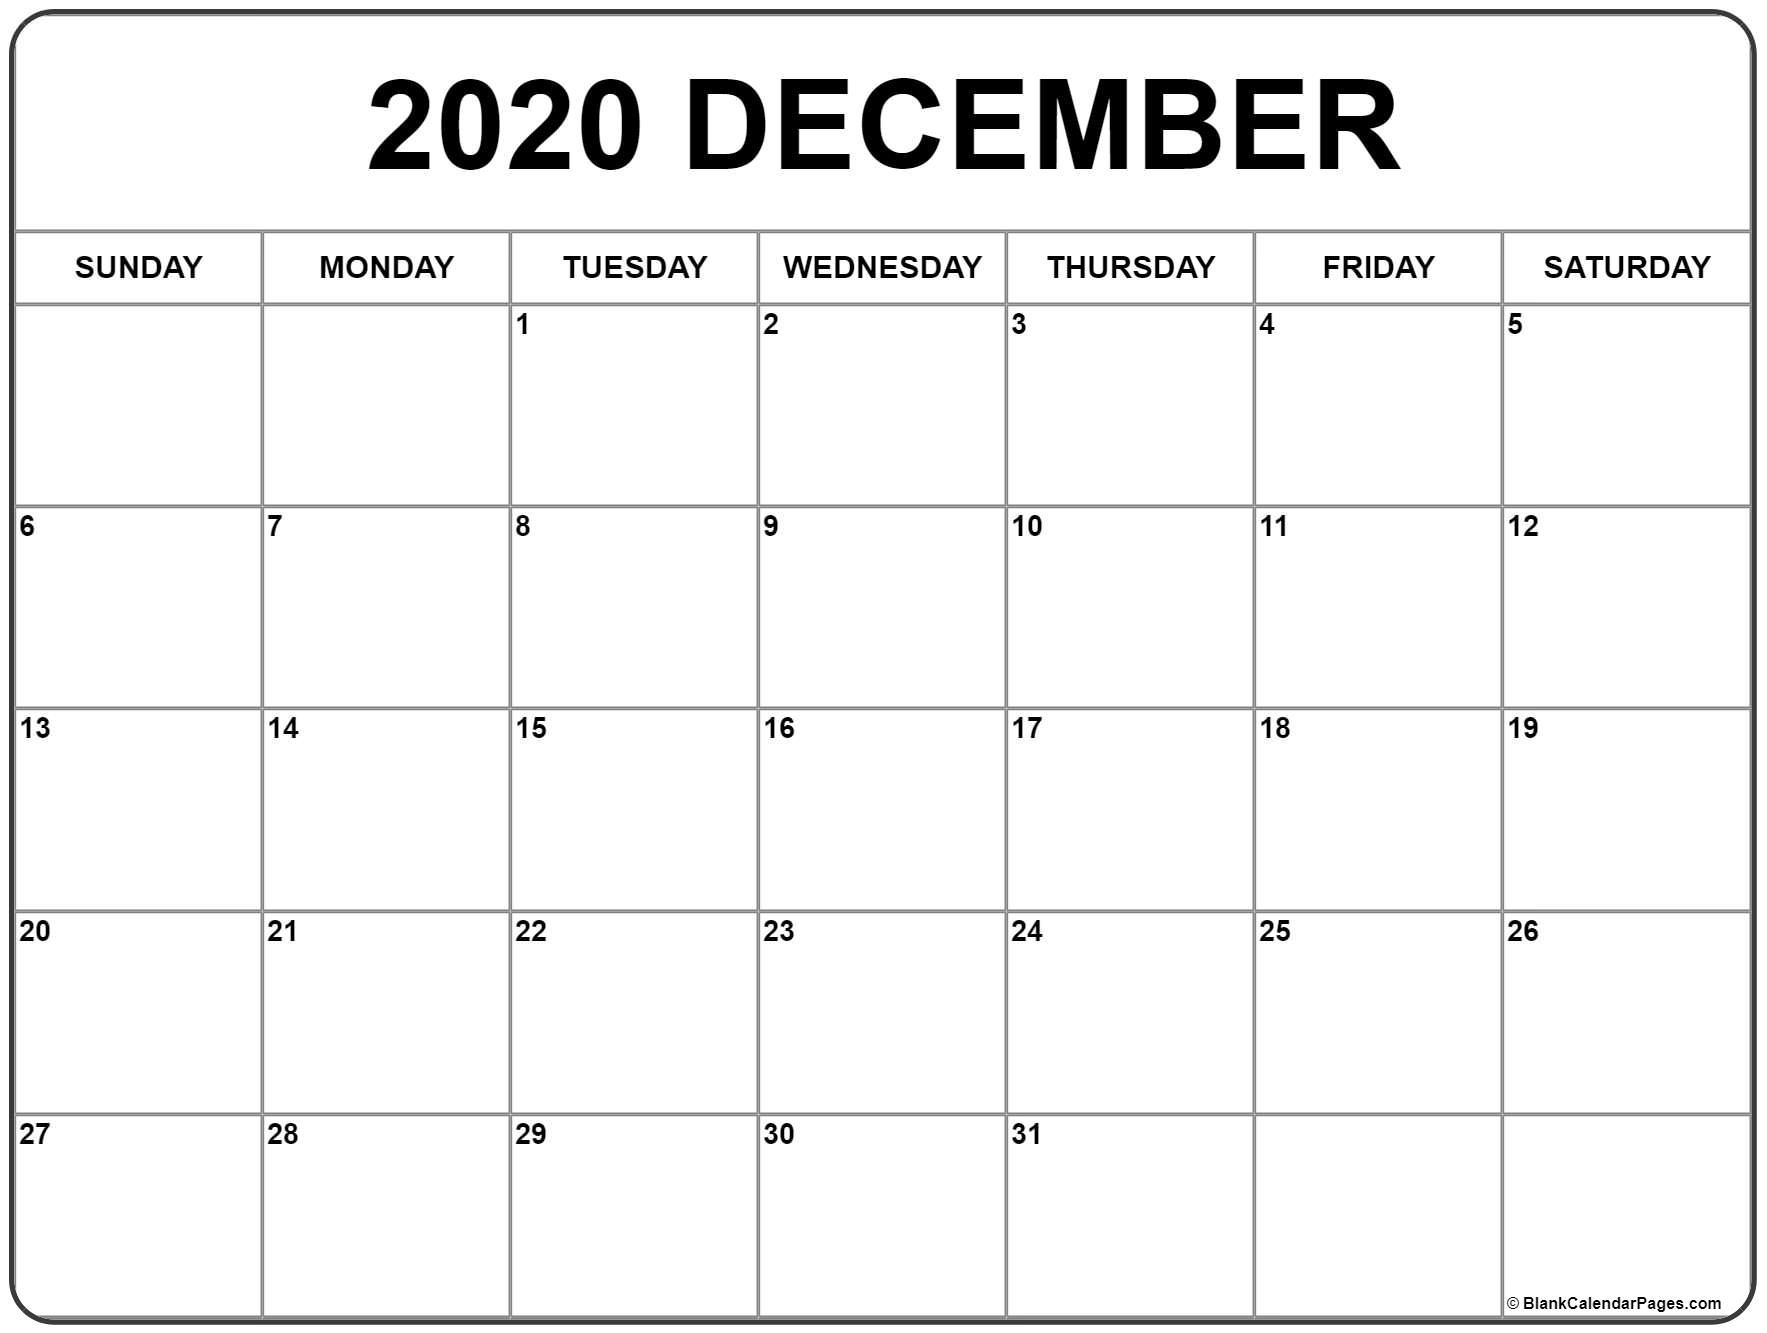 Blank Calendar December 2020  Bolan.horizonconsulting.co inside Printable December Calender 2020